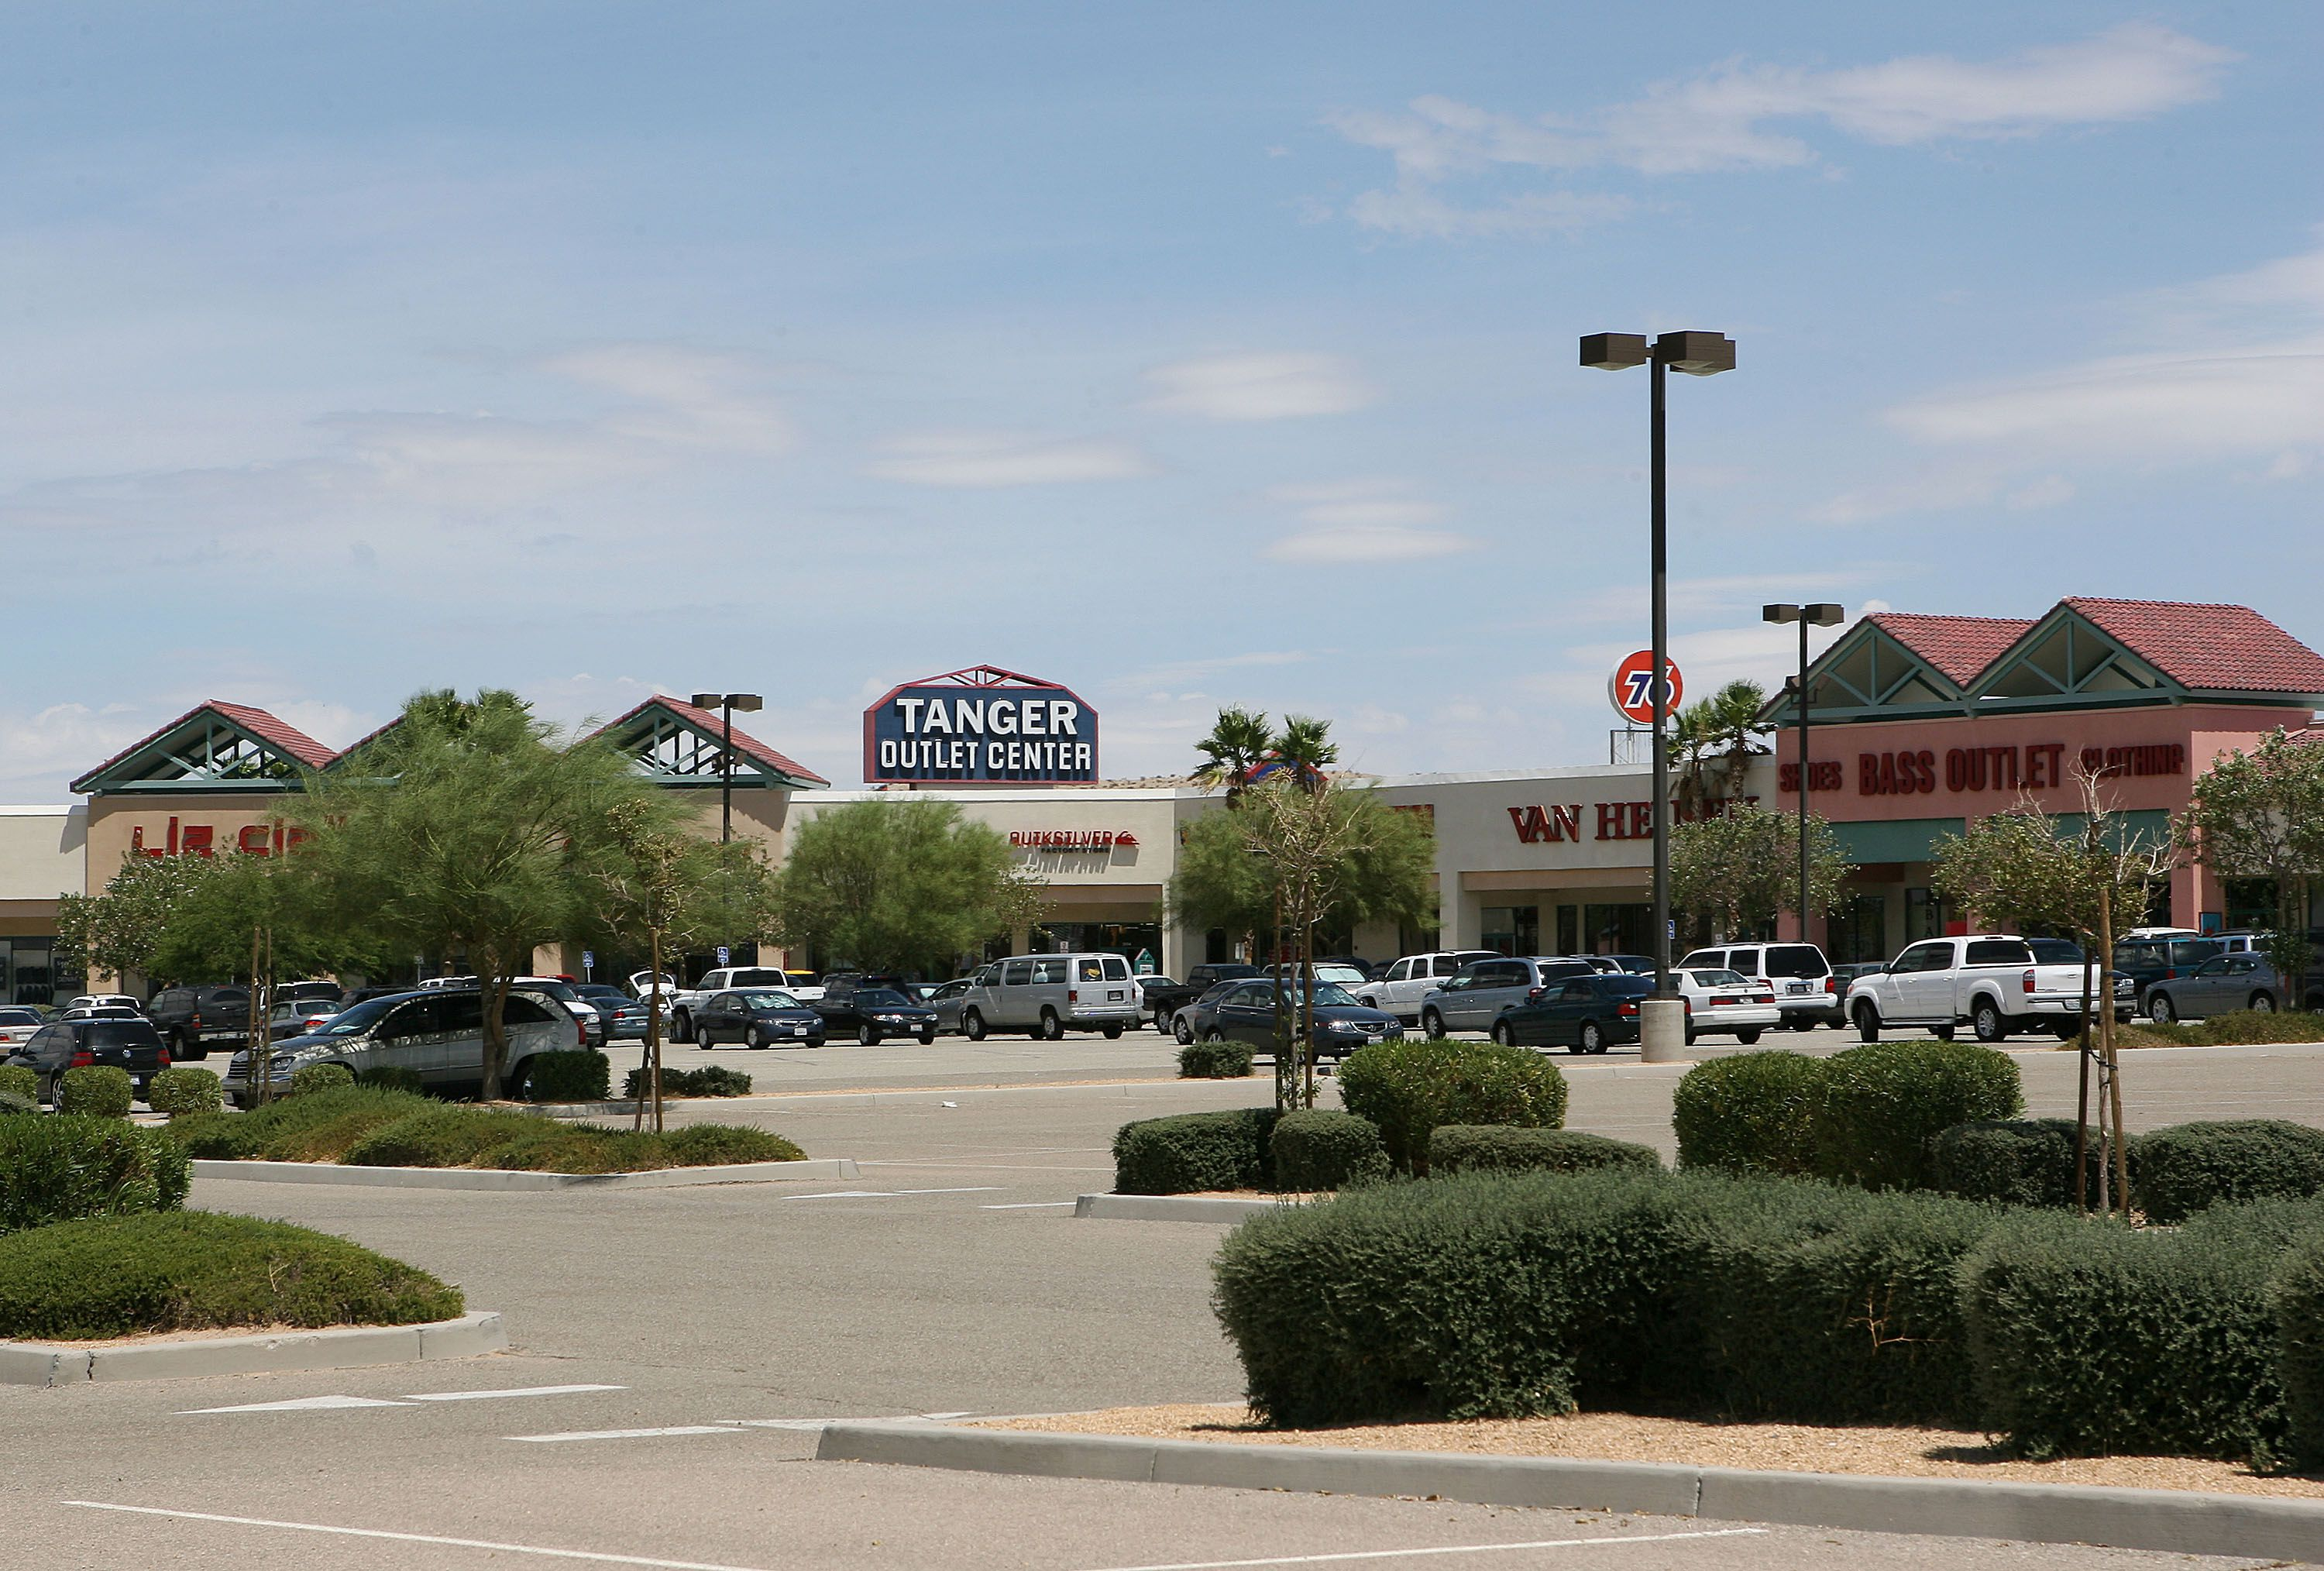 Tanger Outlets at Foxwoods takes your shopping trip to the next level by creating a shopping experience. With brands like Michael Kors, Calvin Klein, Brooks Brothers, Nike, H&M, Kay Jewelers, Gap Factory Outlet and many more, you can shop, but don't drop because there's always more to .